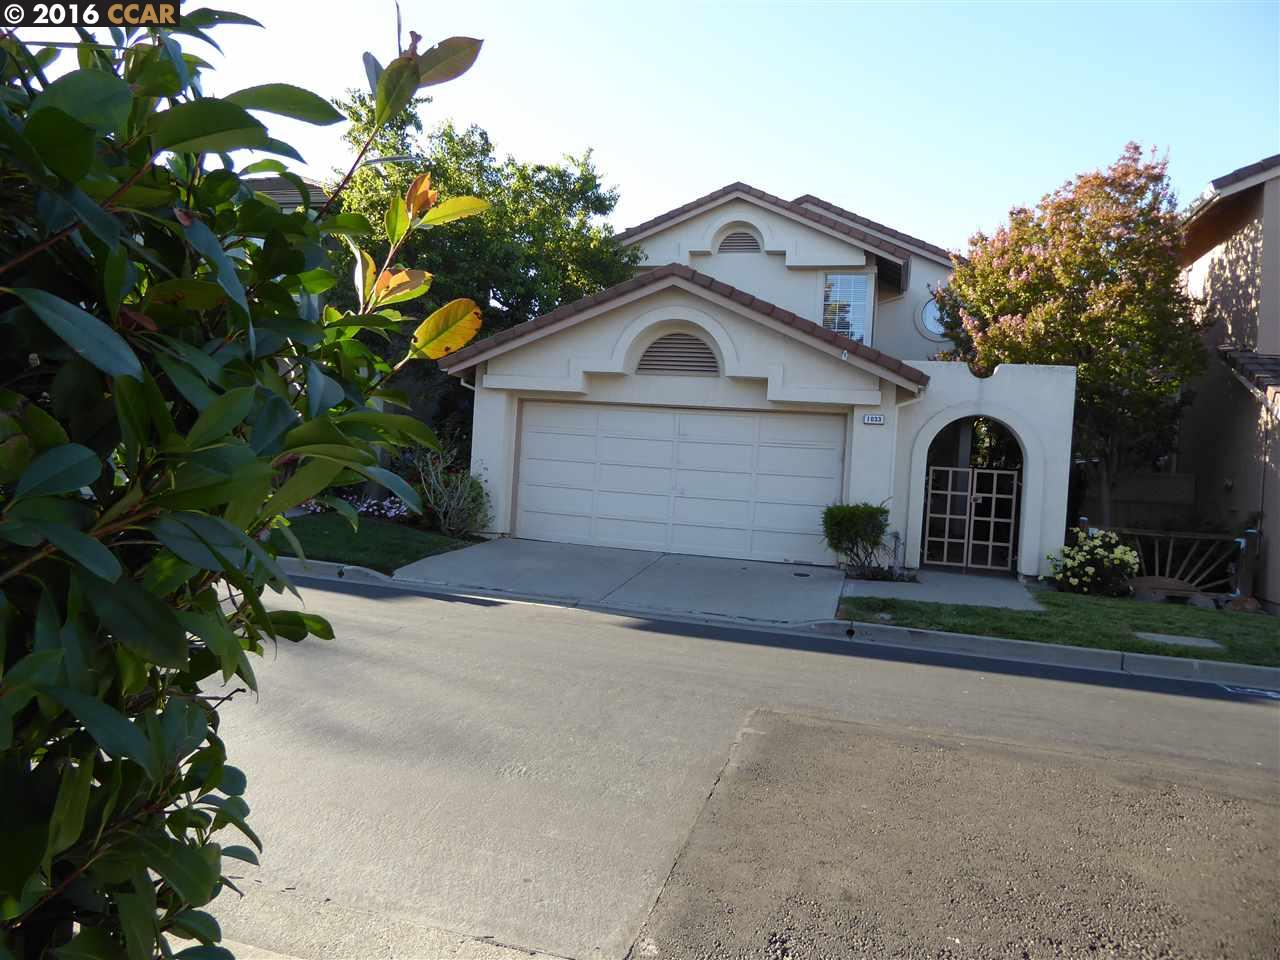 1033, Lakeridge Place San Ramon Ca 94520